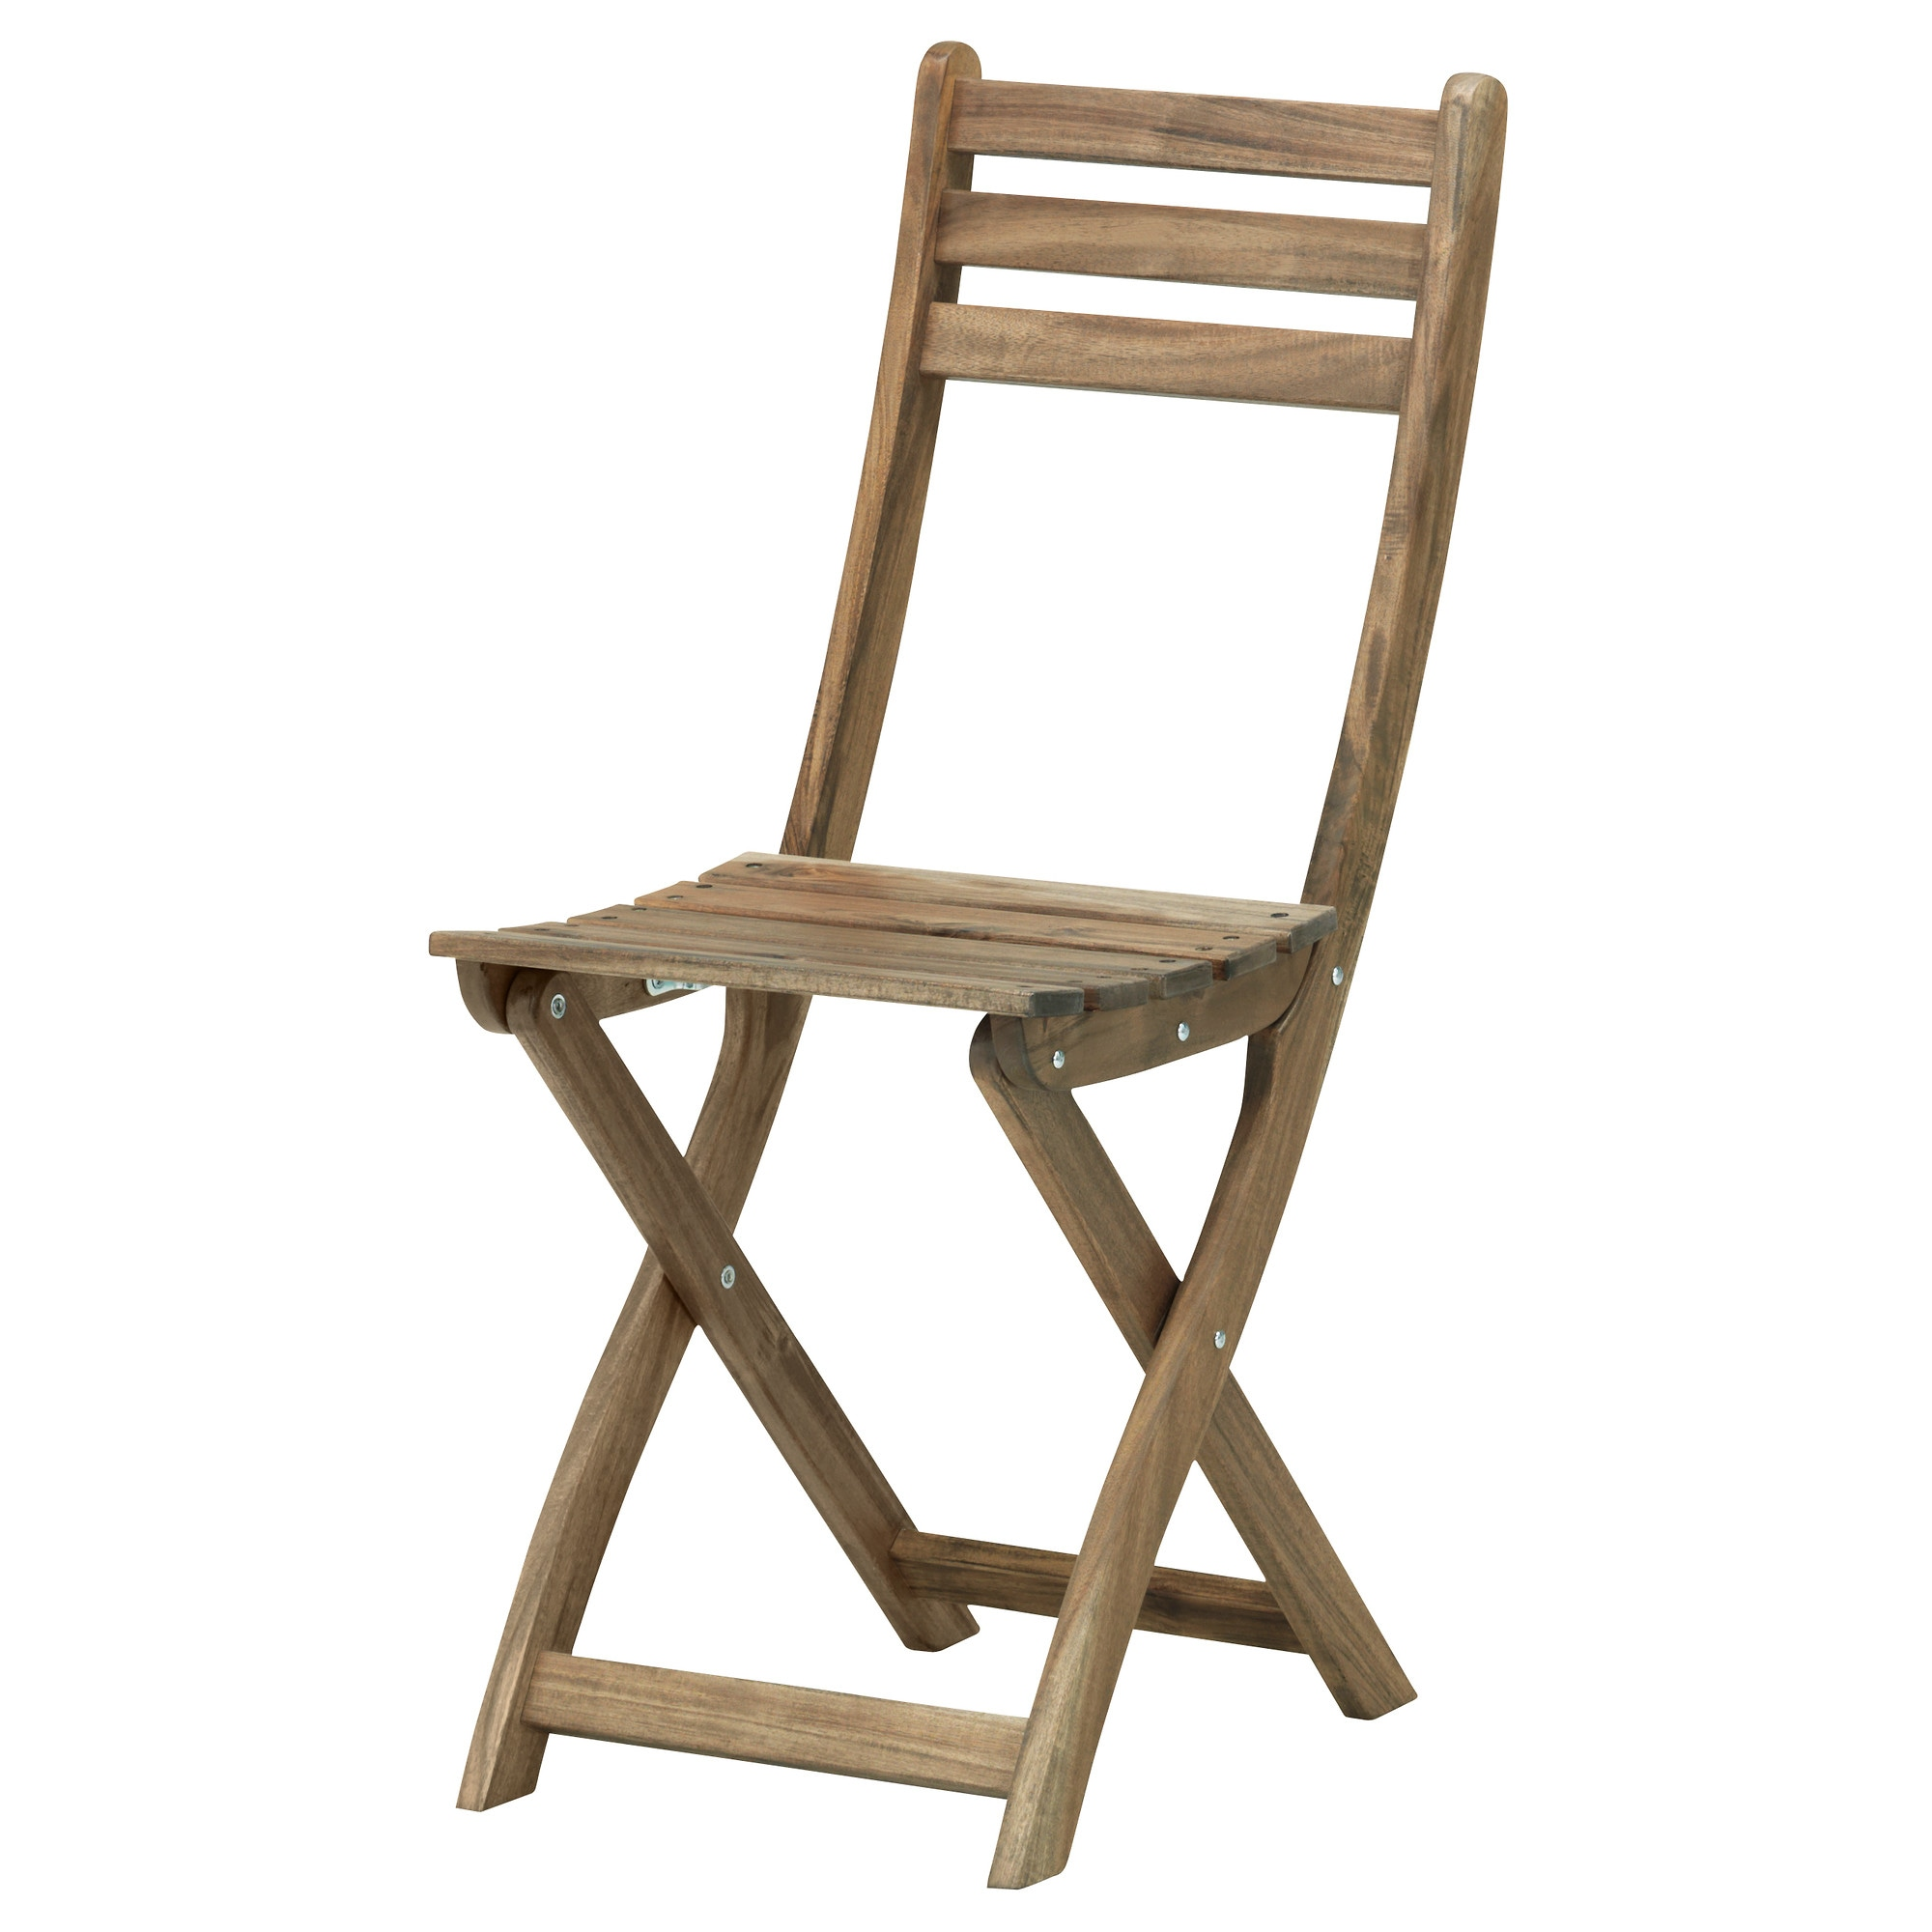 Wood folding chair outdoor - Inter Ikea Systems B V 1999 2017 Privacy Policy